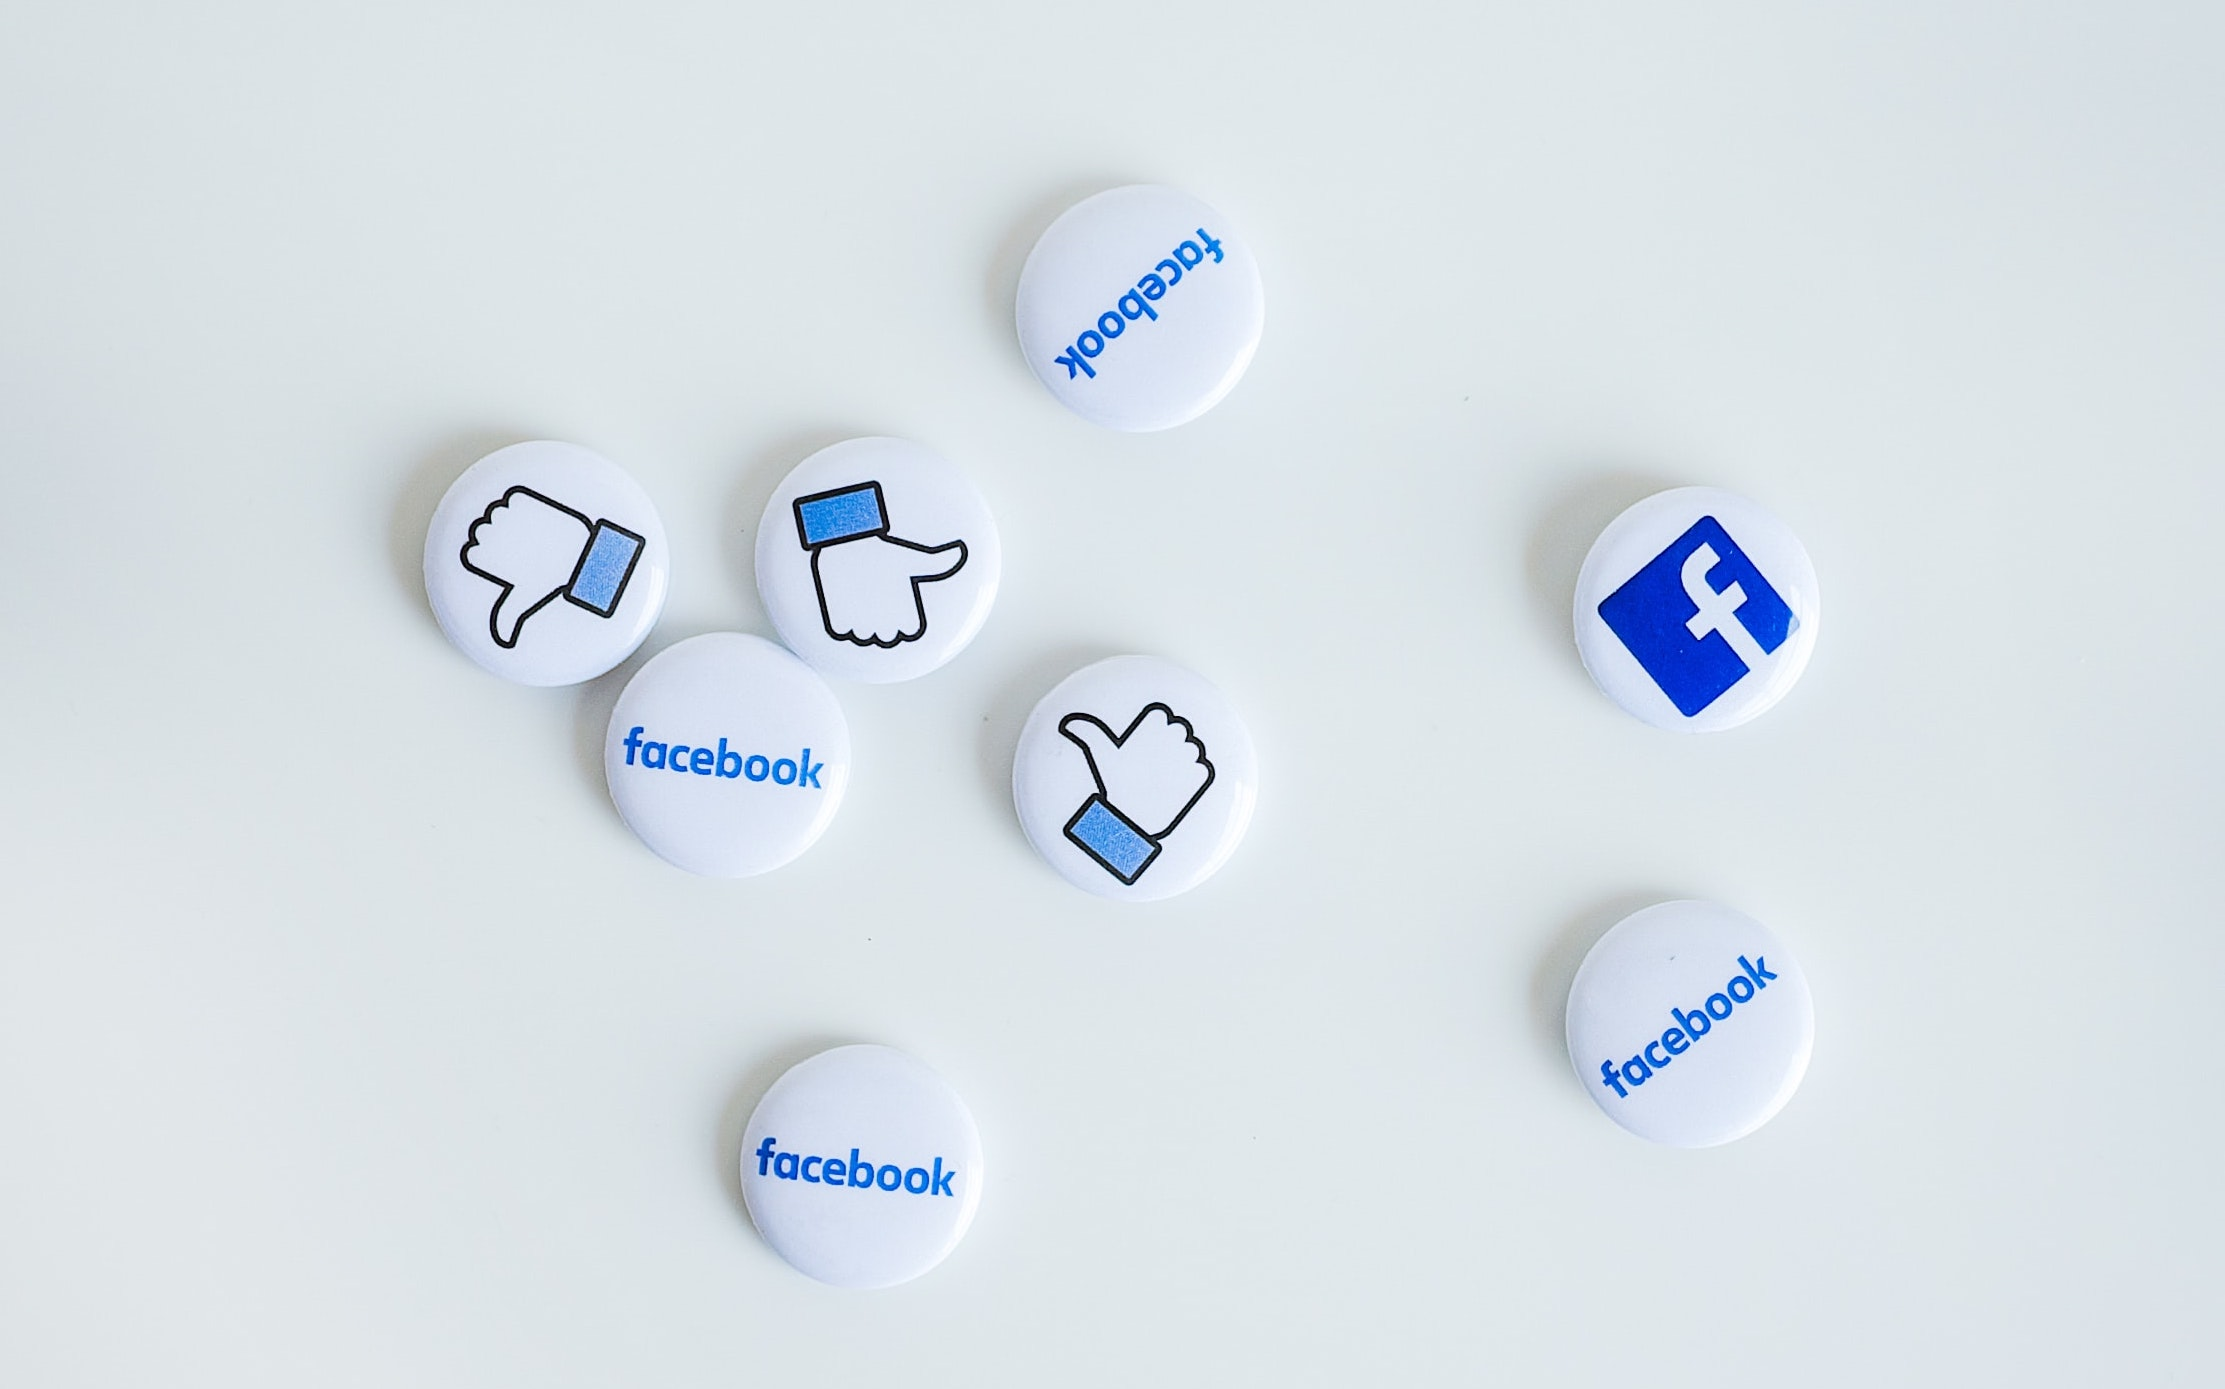 little badges on a table with facebook logos and like symbols